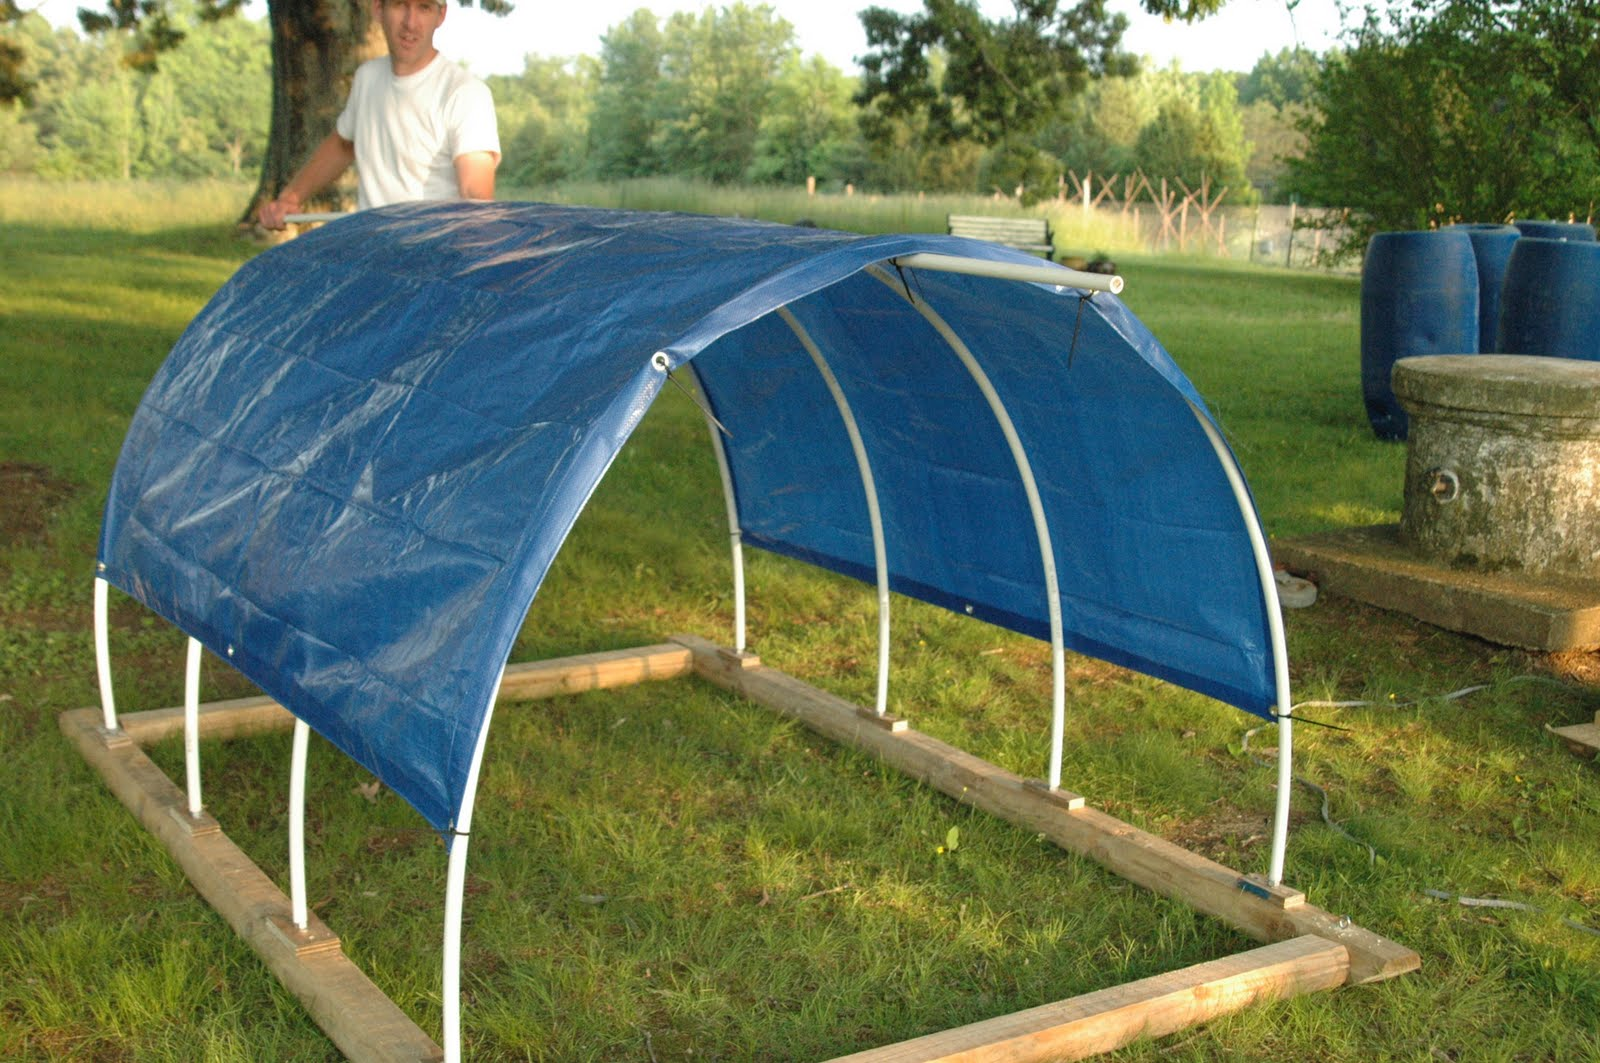 Pvc Boat Shelter : Green legacy farm moooovin along portable calf shelter